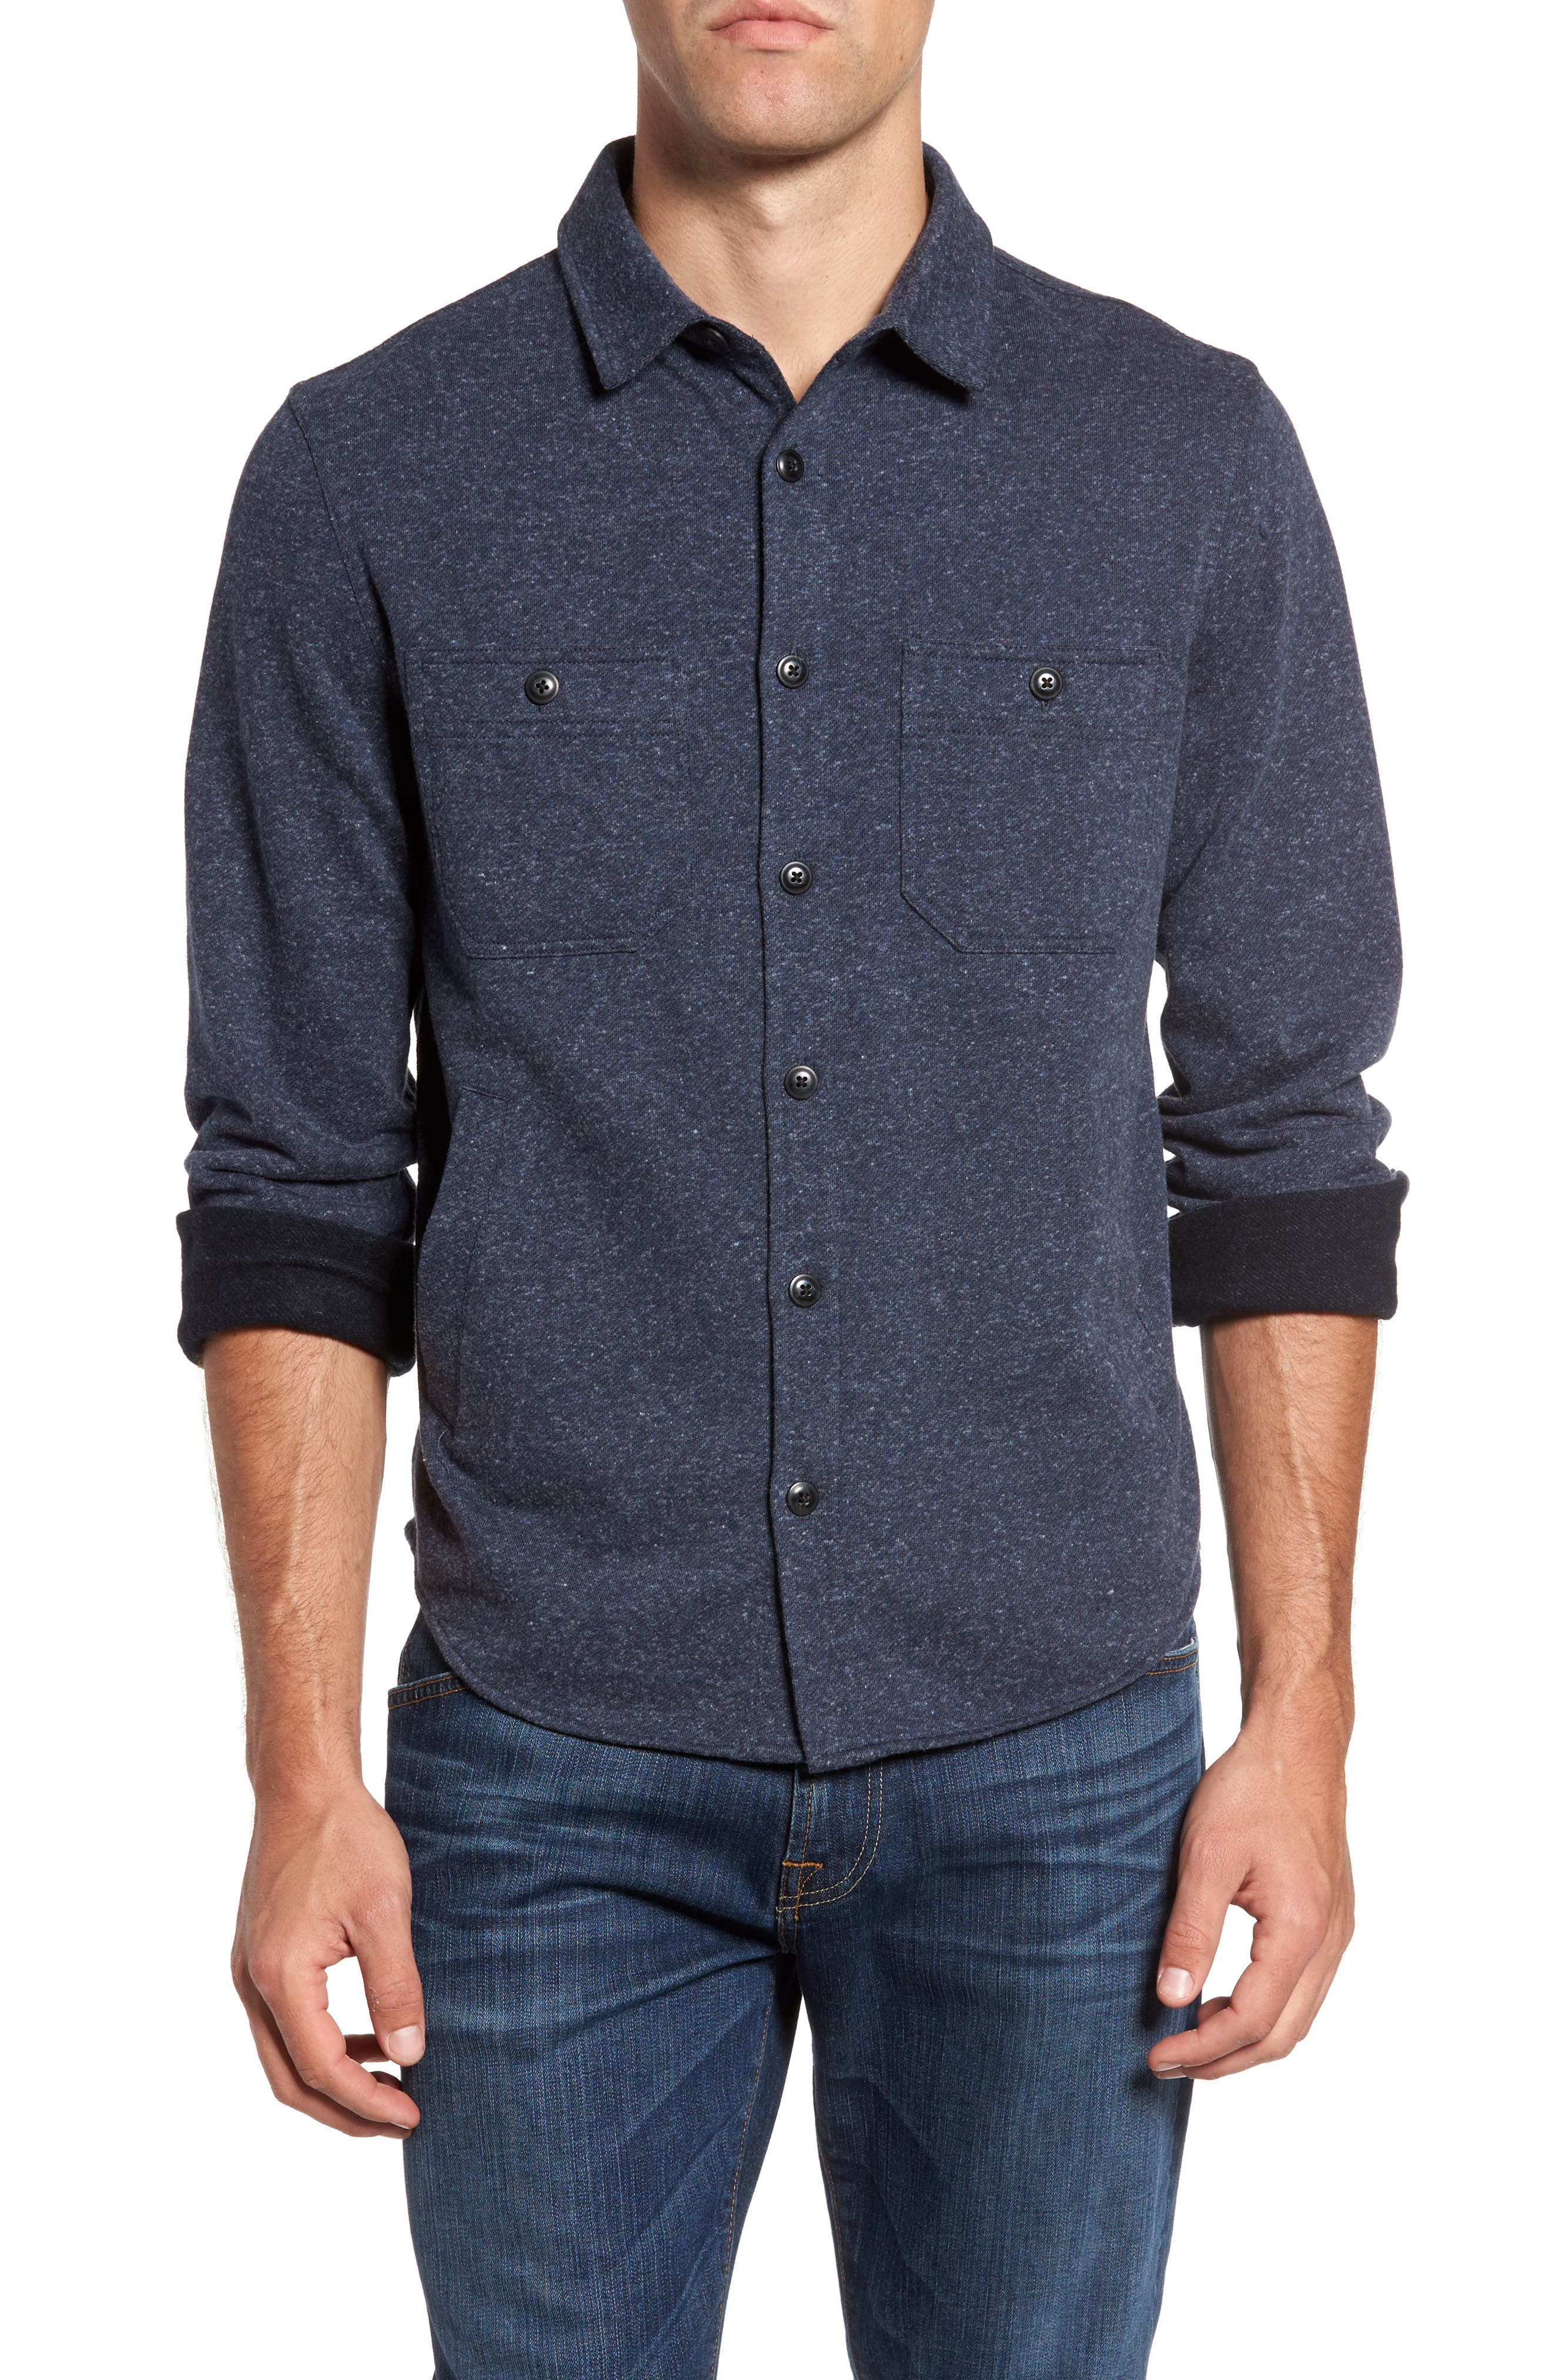 Bayswater Modern Fit Heathered Shirt Jacket,                         Main,                         color, Navy Heather